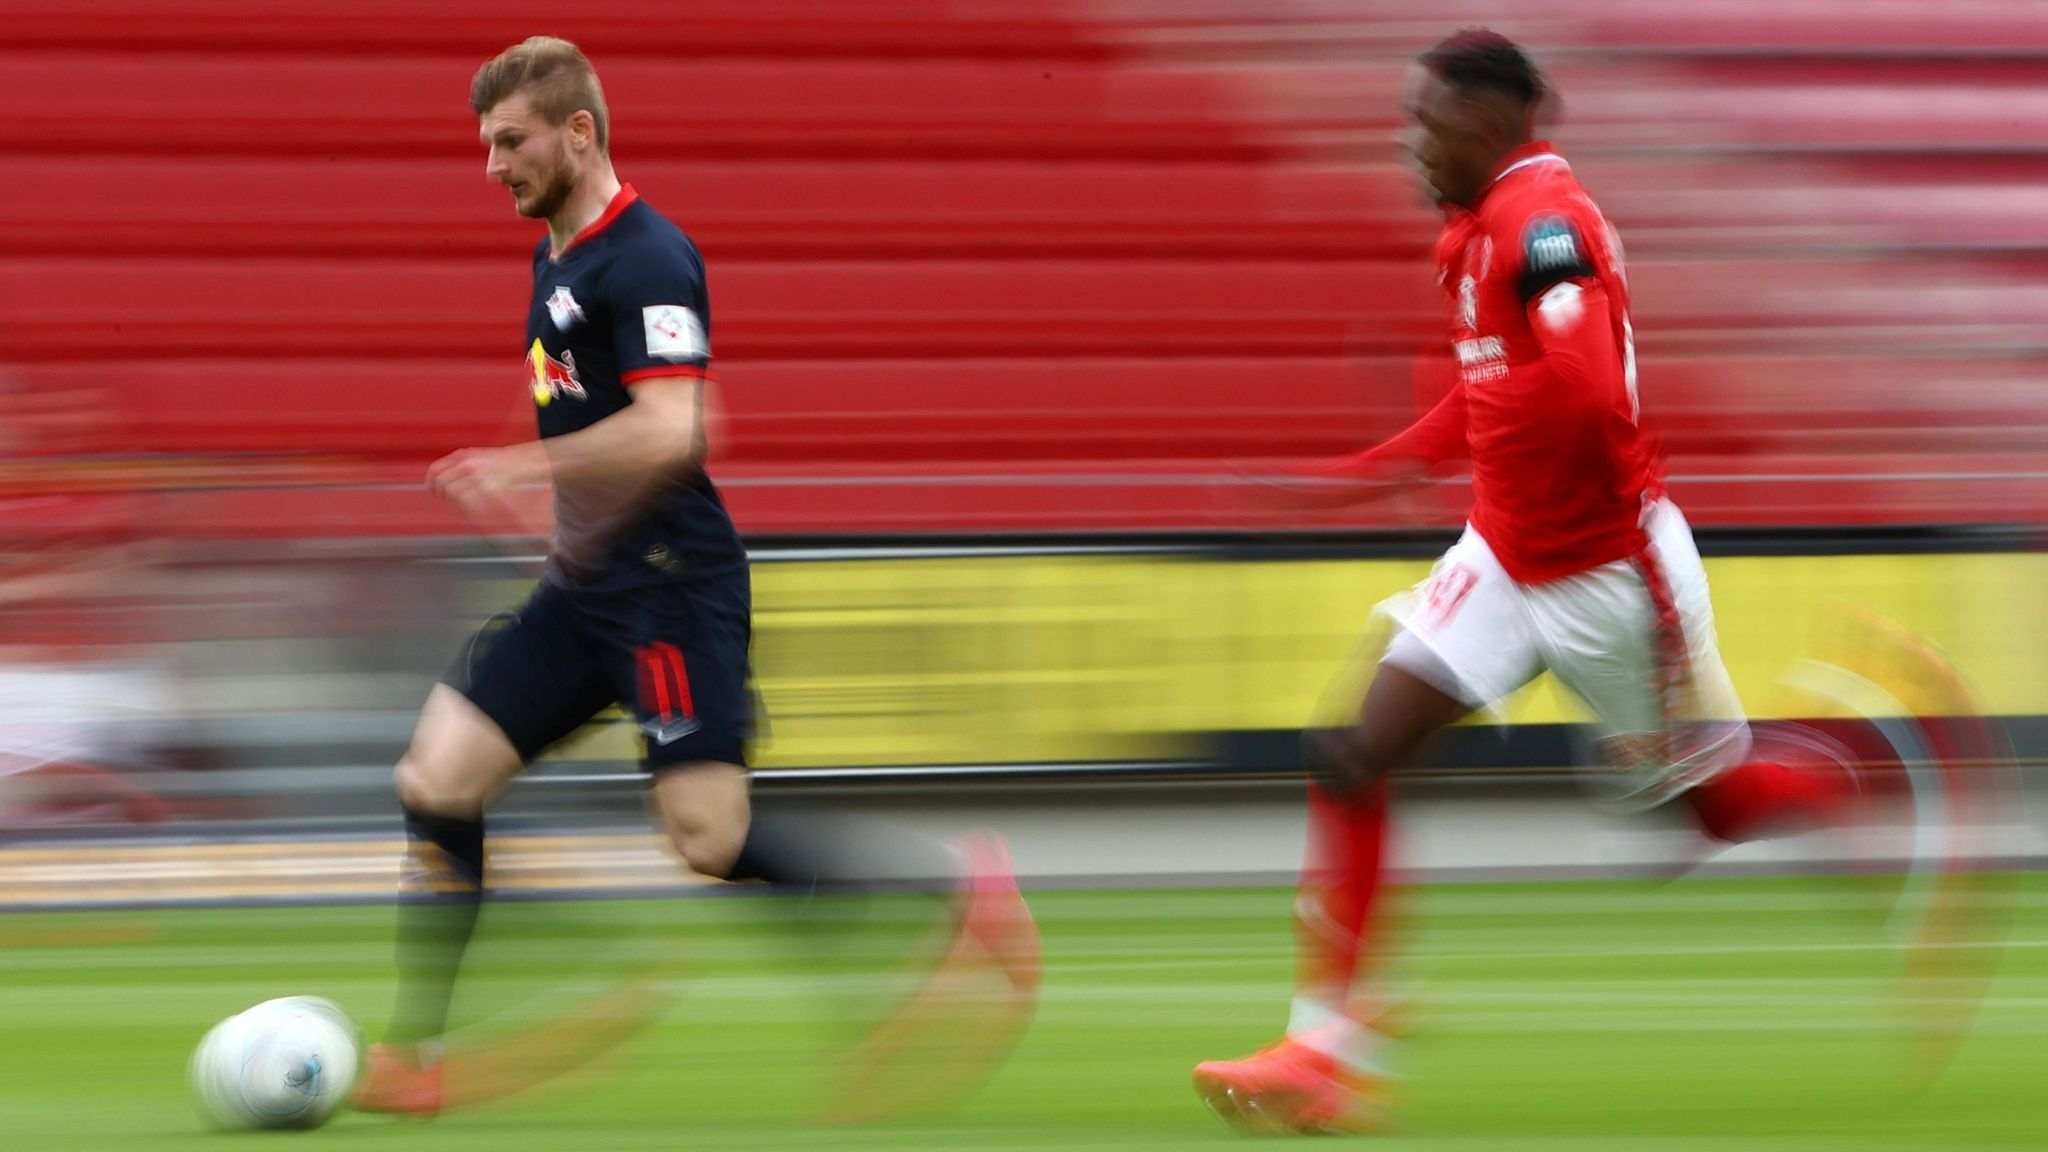 Bayern Munich And Borussia Dortmund Show Best And Worst Sides Ahead Of Tuesday S Klassiker Bundesliga Hits And Misses Football News Sky Sports